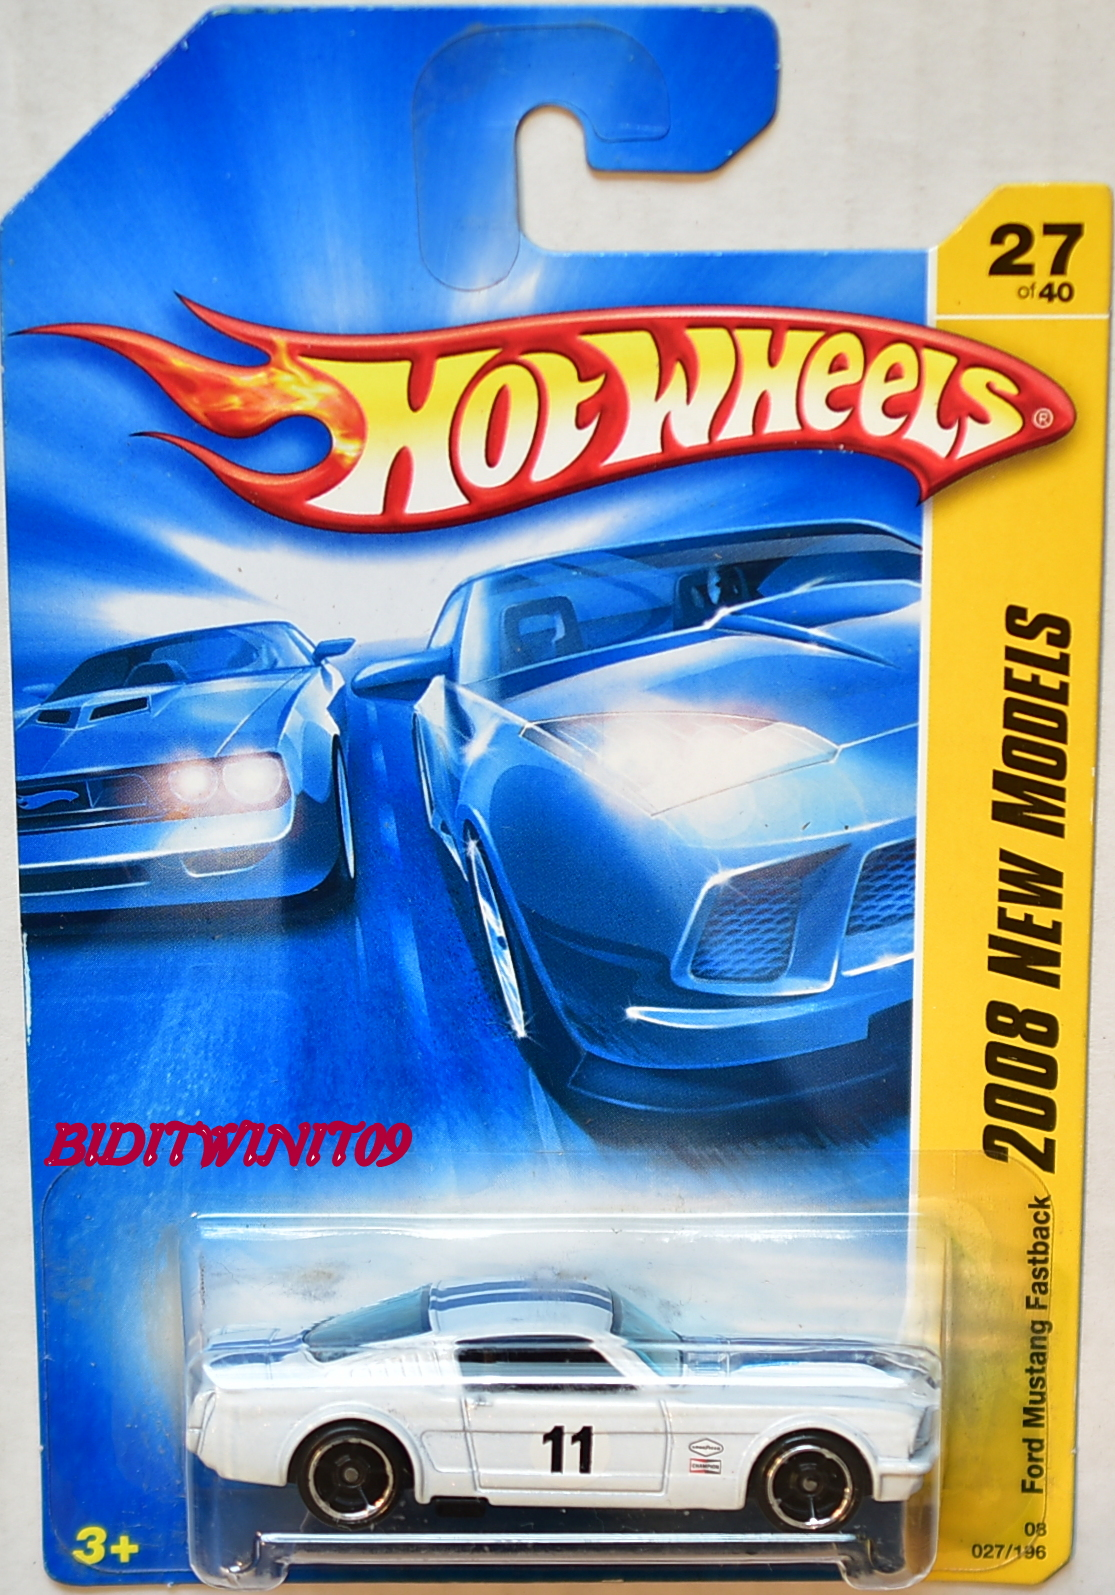 Hot Wheels Ford Mustang Fastback 2008 New Models White